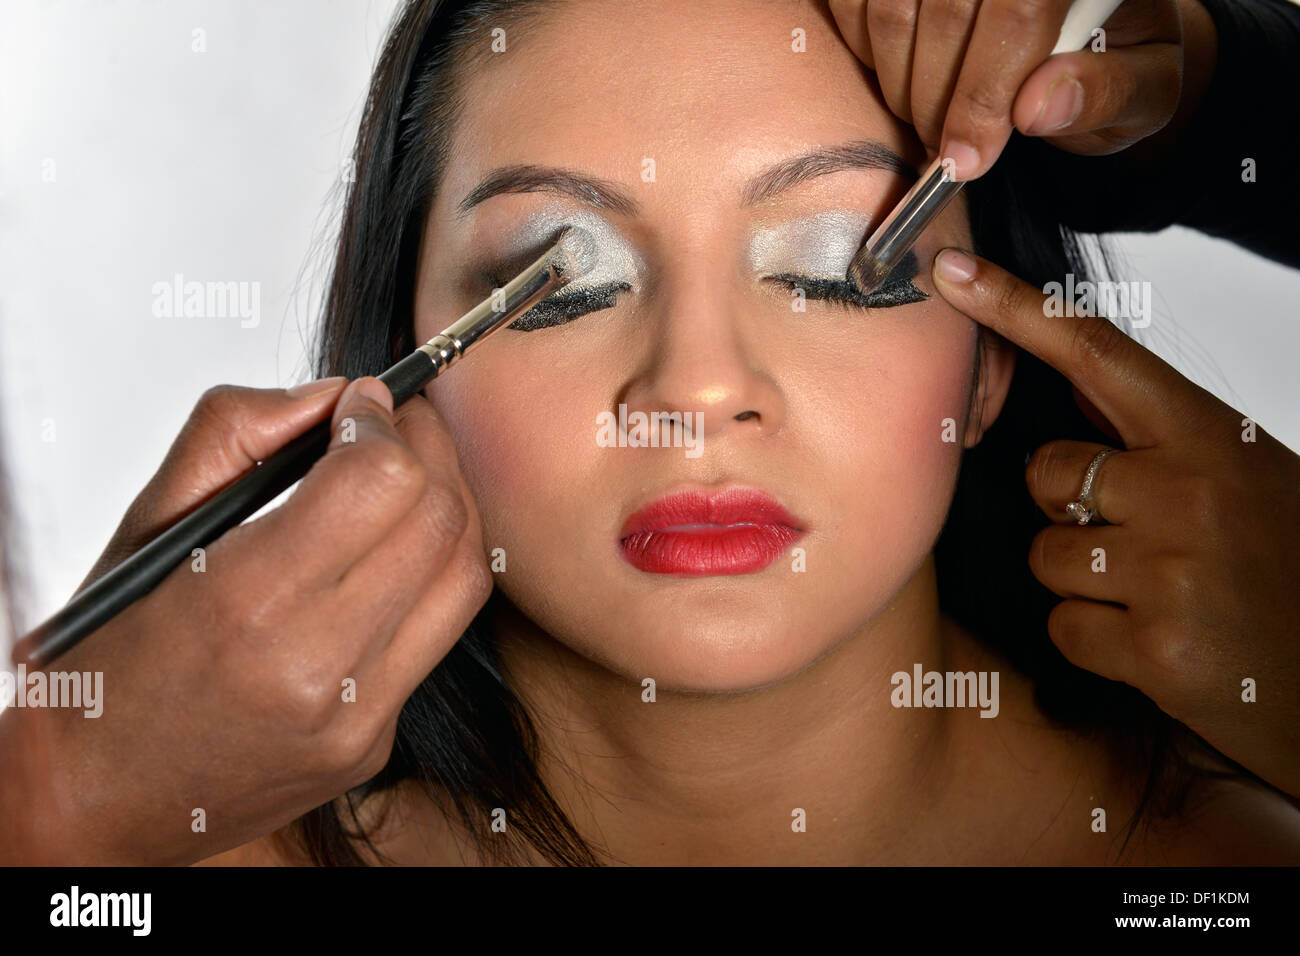 An asian woman having make-up applied - Stock Image